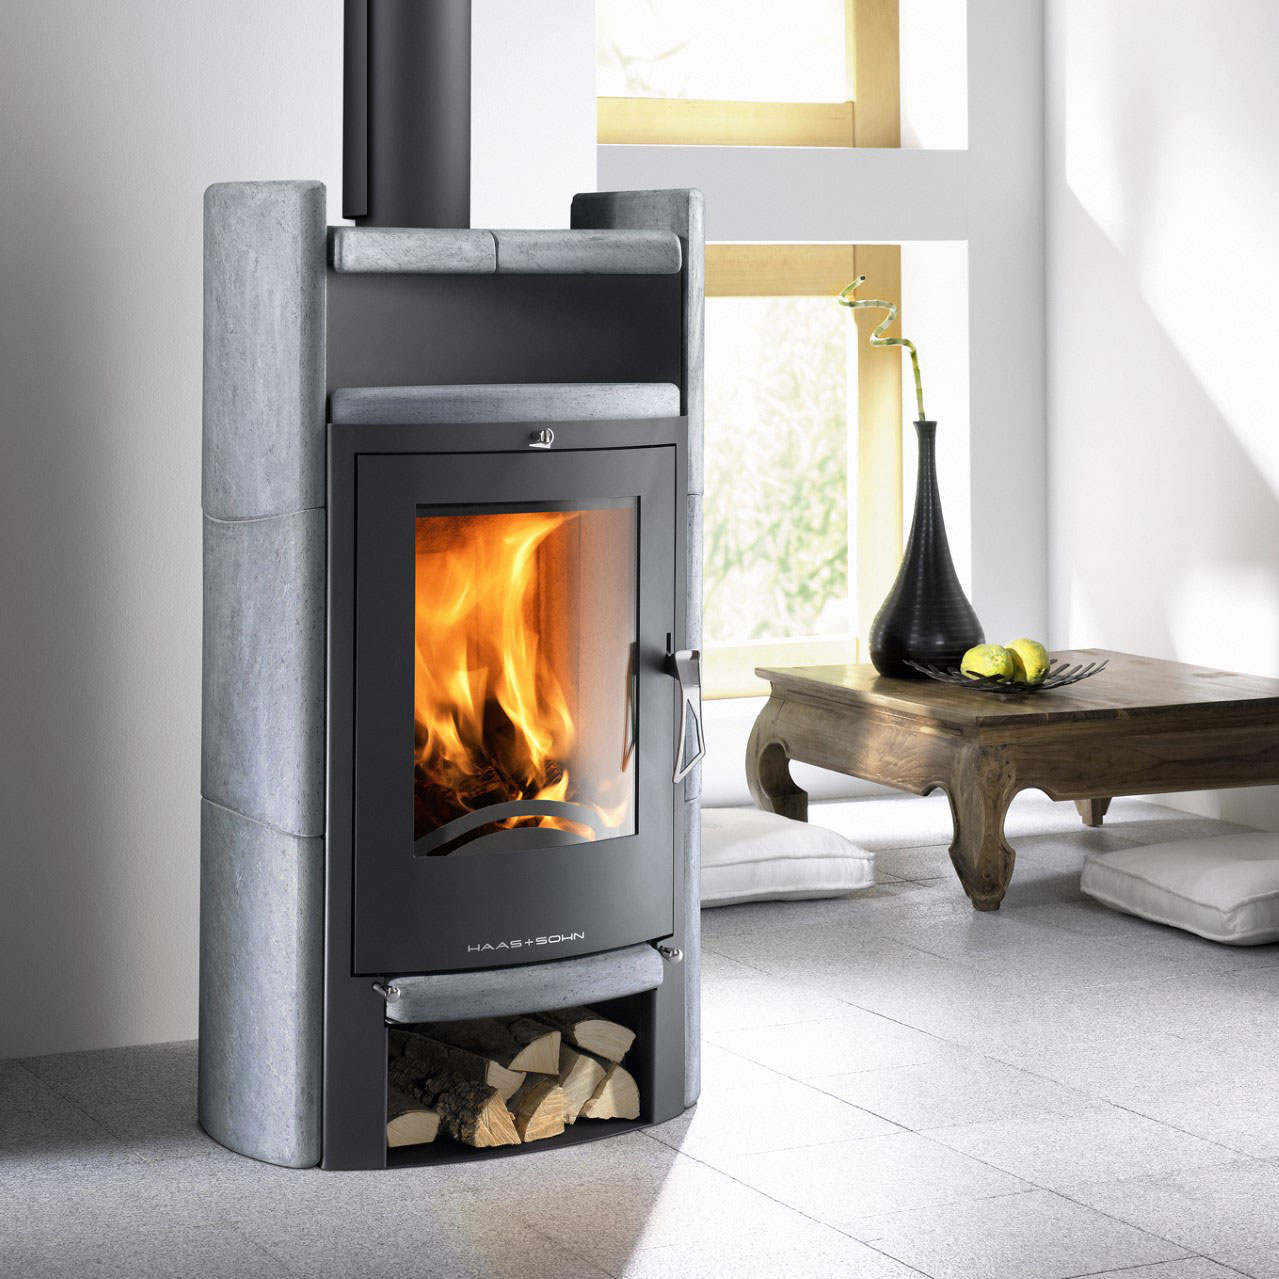 Euro Uppsala light grey wood heater with door and timber storage underneath